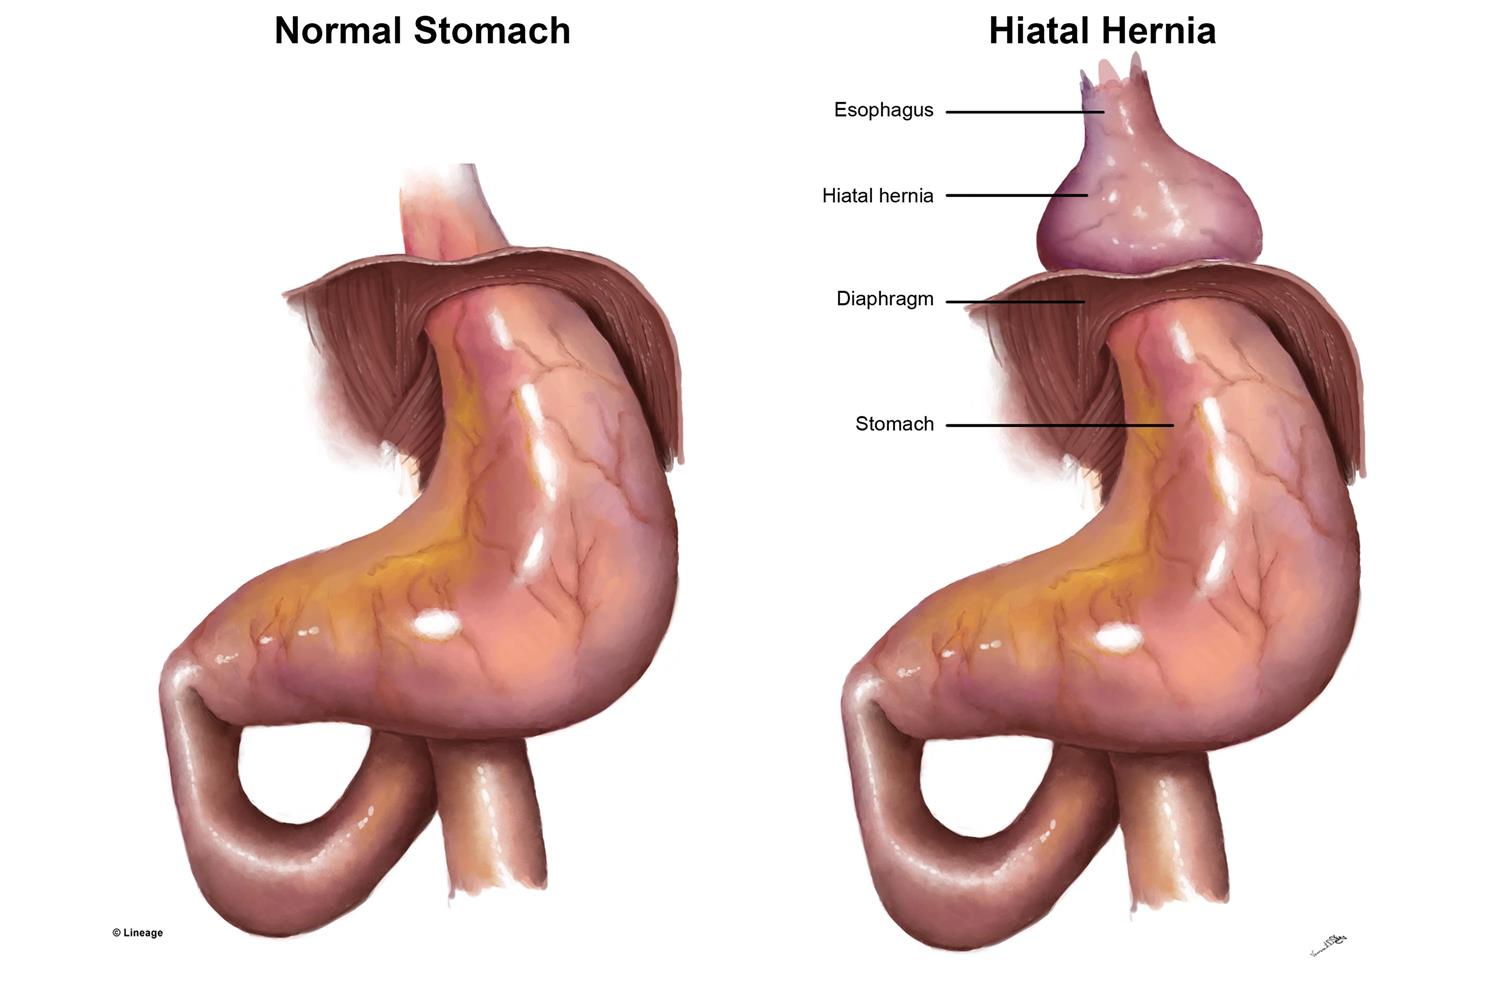 https://upload.medbullets.com/topic/120143/images/hiatal_hernia.jpg